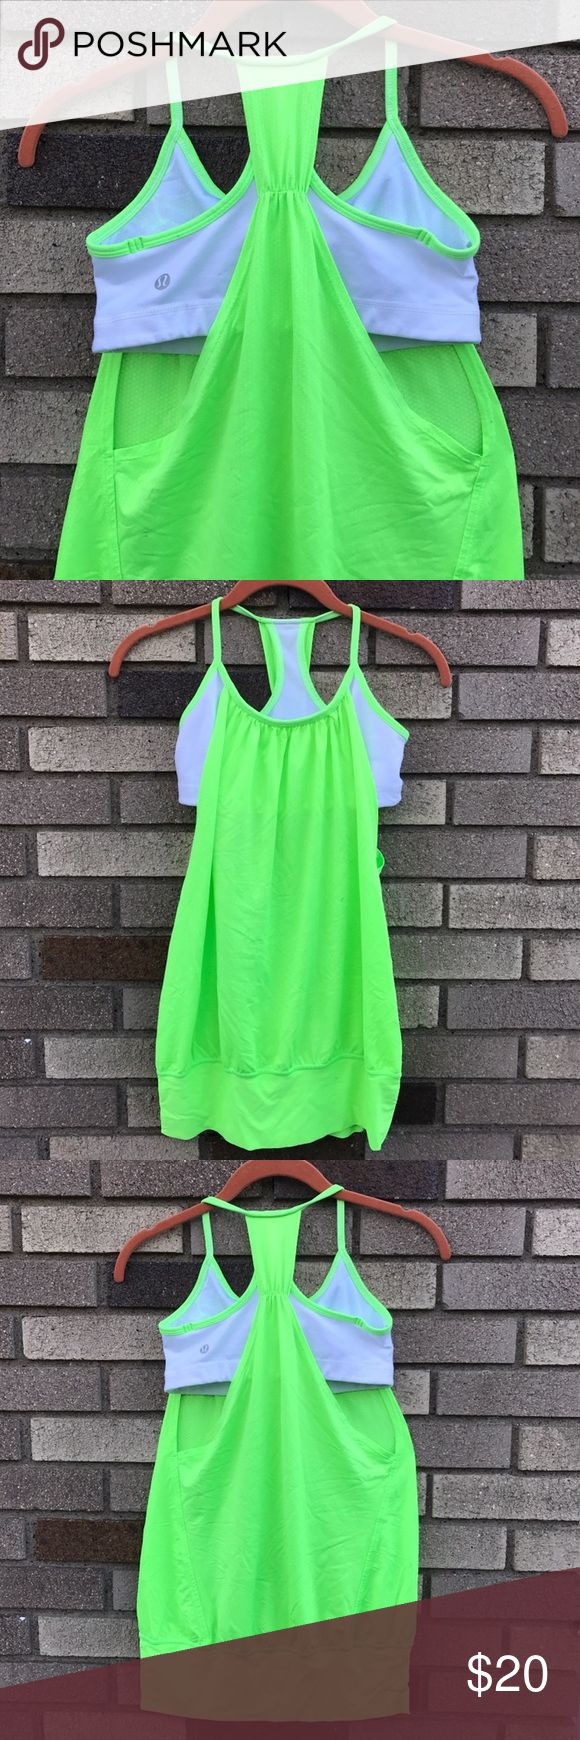 Lululemon Neon Bra Tank Seriously awesome tank. So bright!  Neon green loose tank over a white bra with neon green accents. Some small marks that are barely noticeable, but price reflects this. lululemon athletica Tops Tank Tops